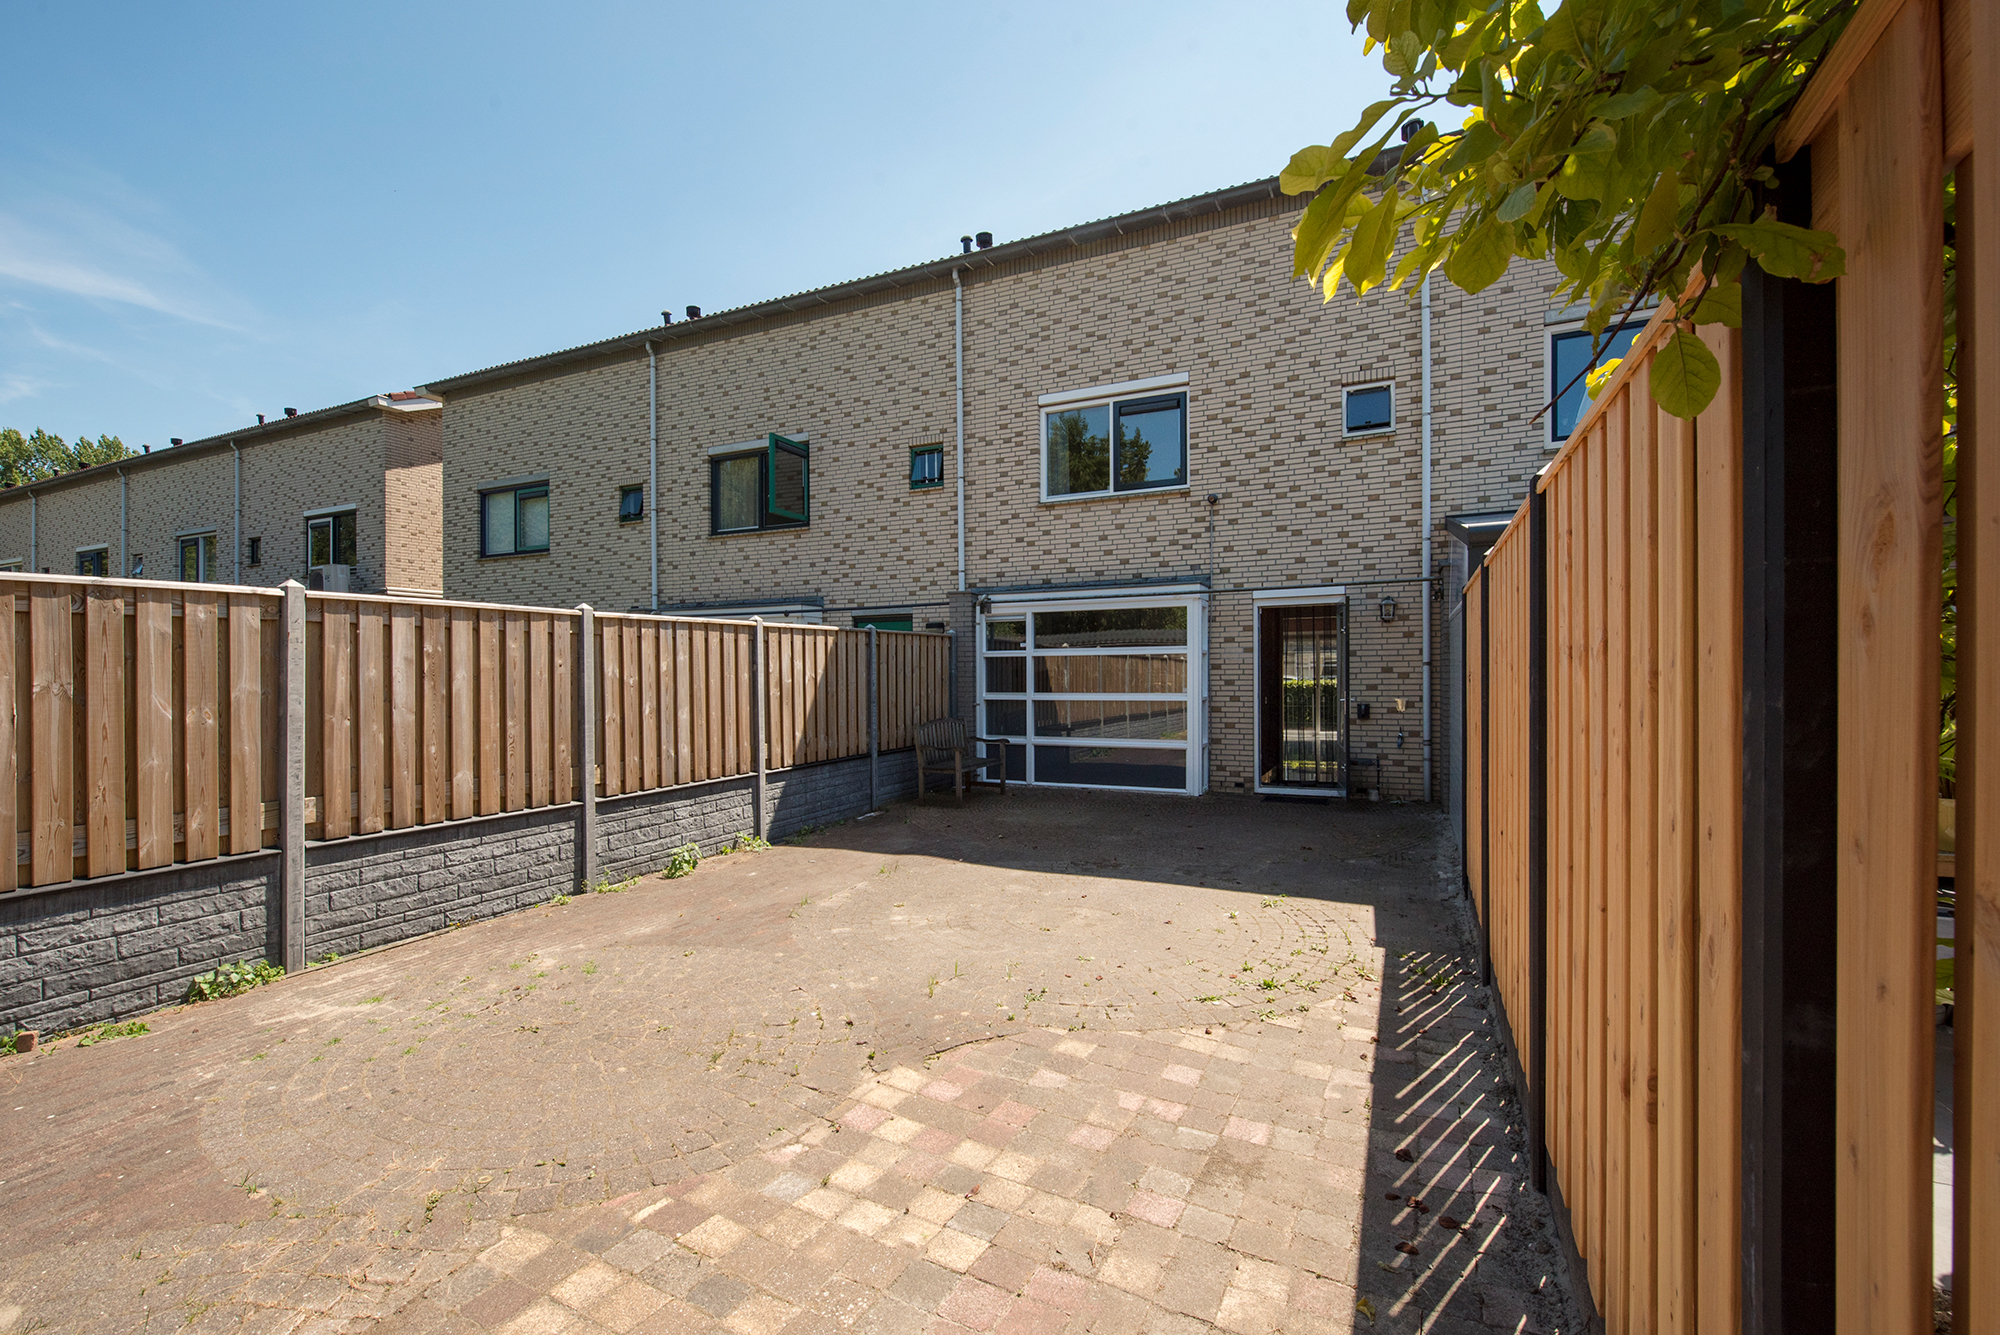 For rent in Almere: 4 bedroom house with garden